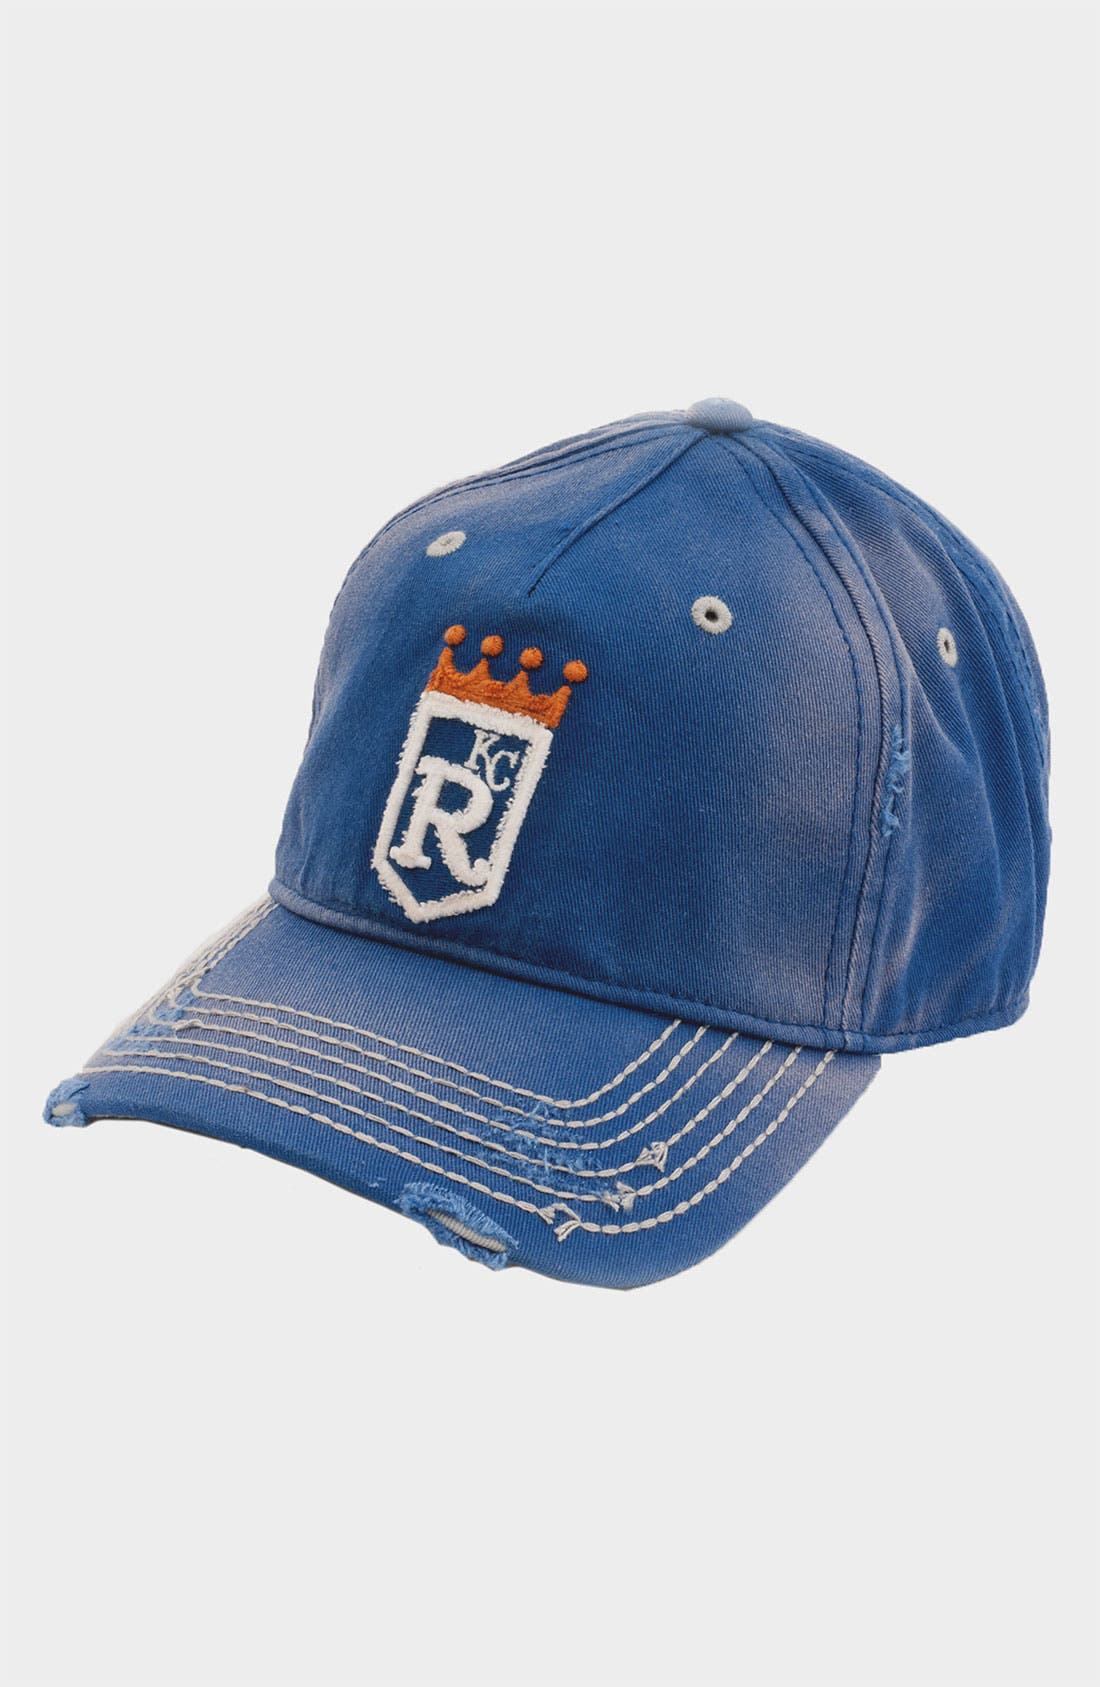 Alternate Image 1 Selected - American Needle 'Kansas City Royals' Baseball Cap